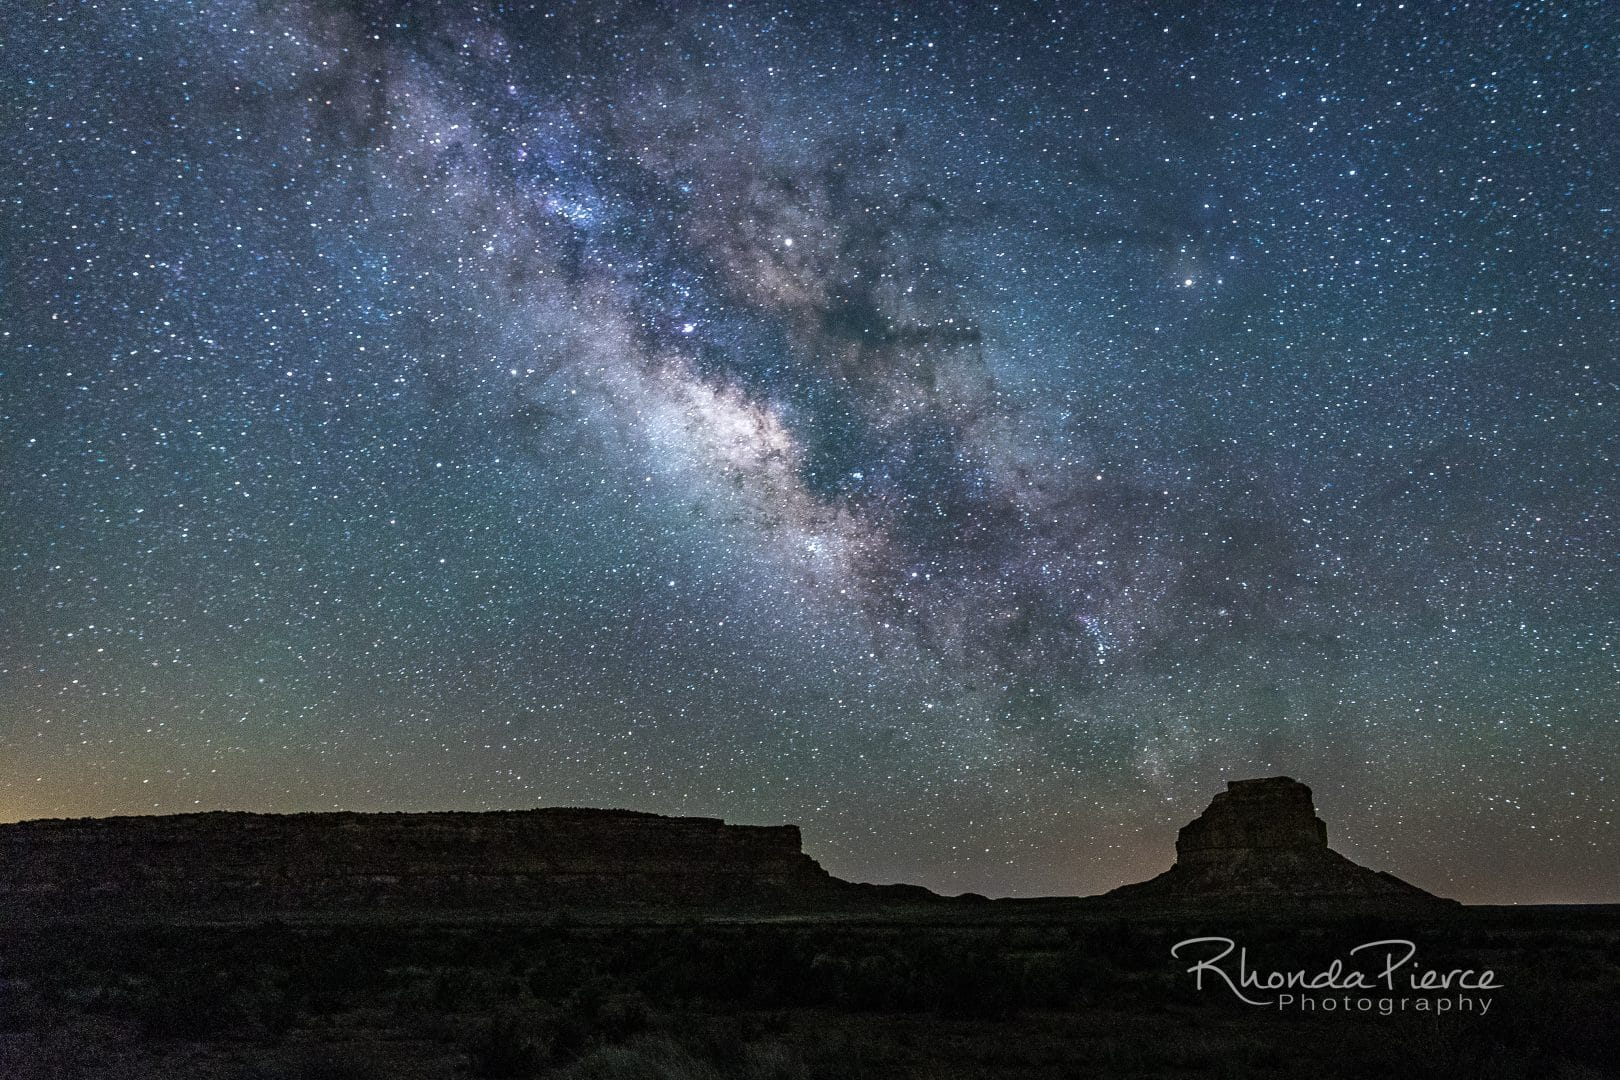 A mid-April Milky Way, rising over Fajada Butte, at Chaco Culture National Historic Park in New Mexico.